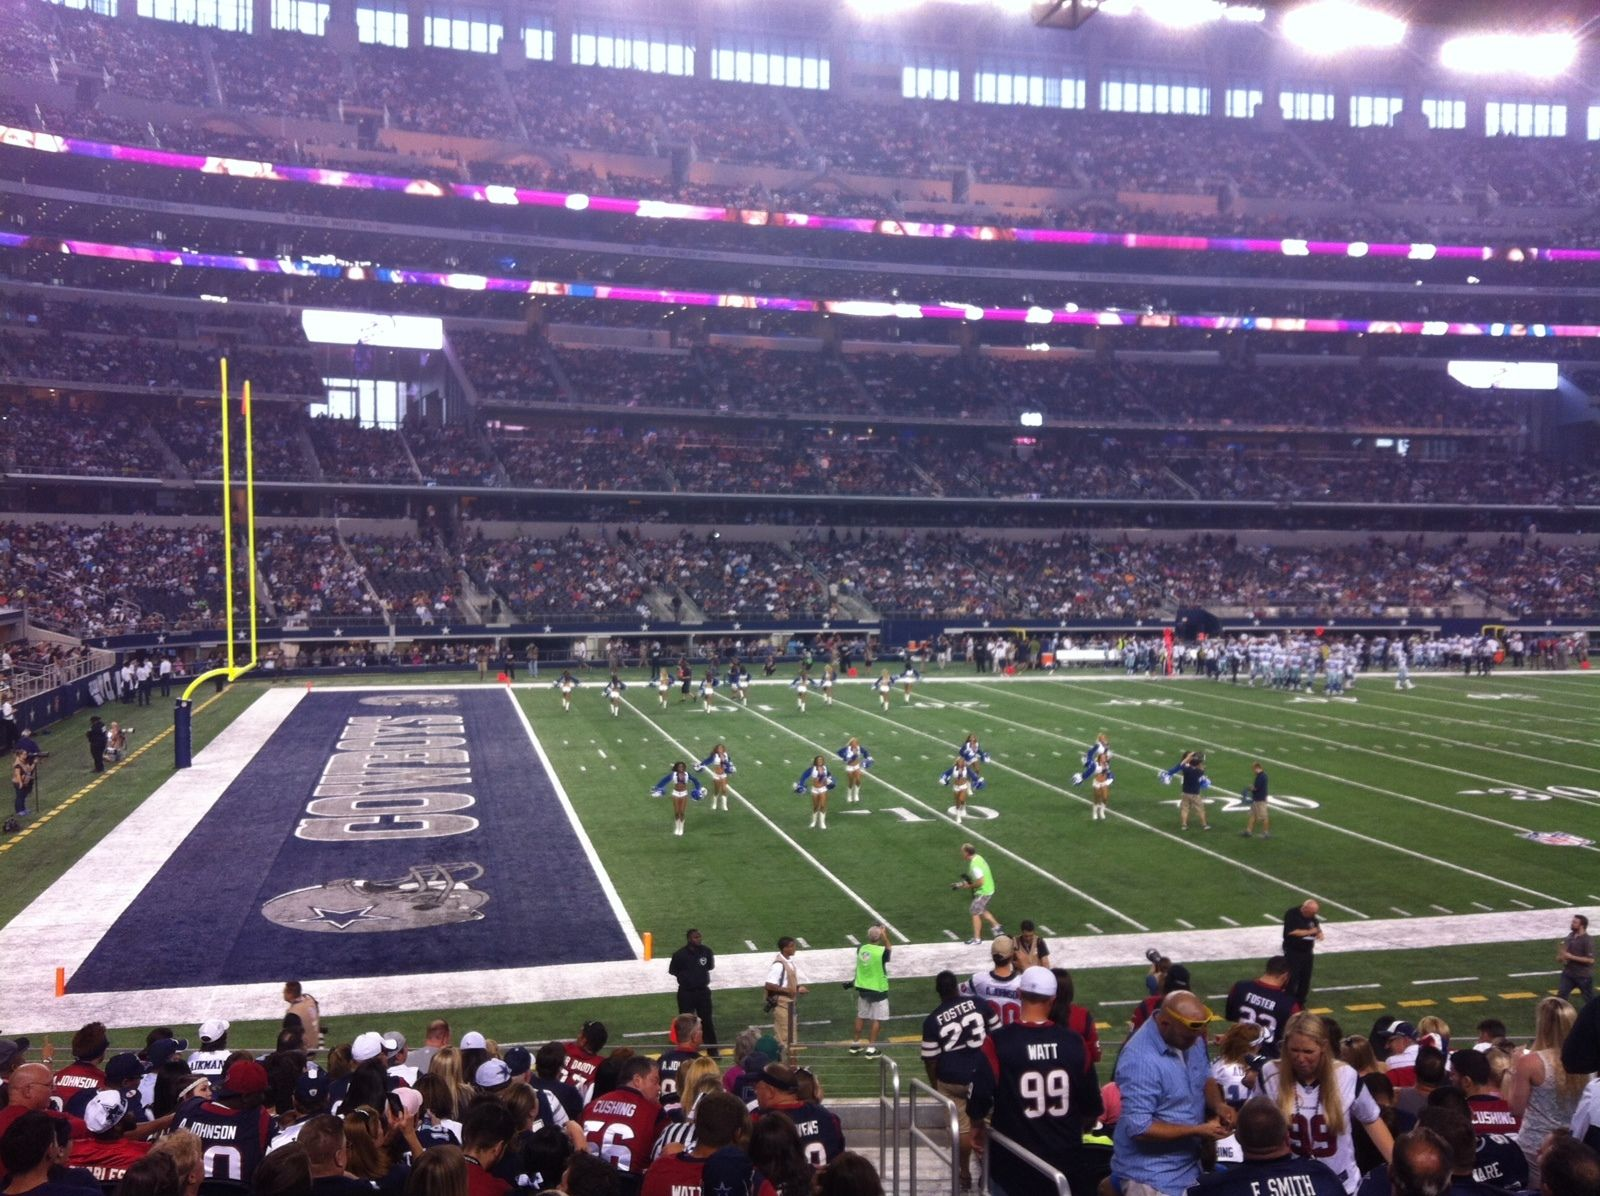 Seat view from section 143 at AT&T Stadium, home of the Dallas Cowboys